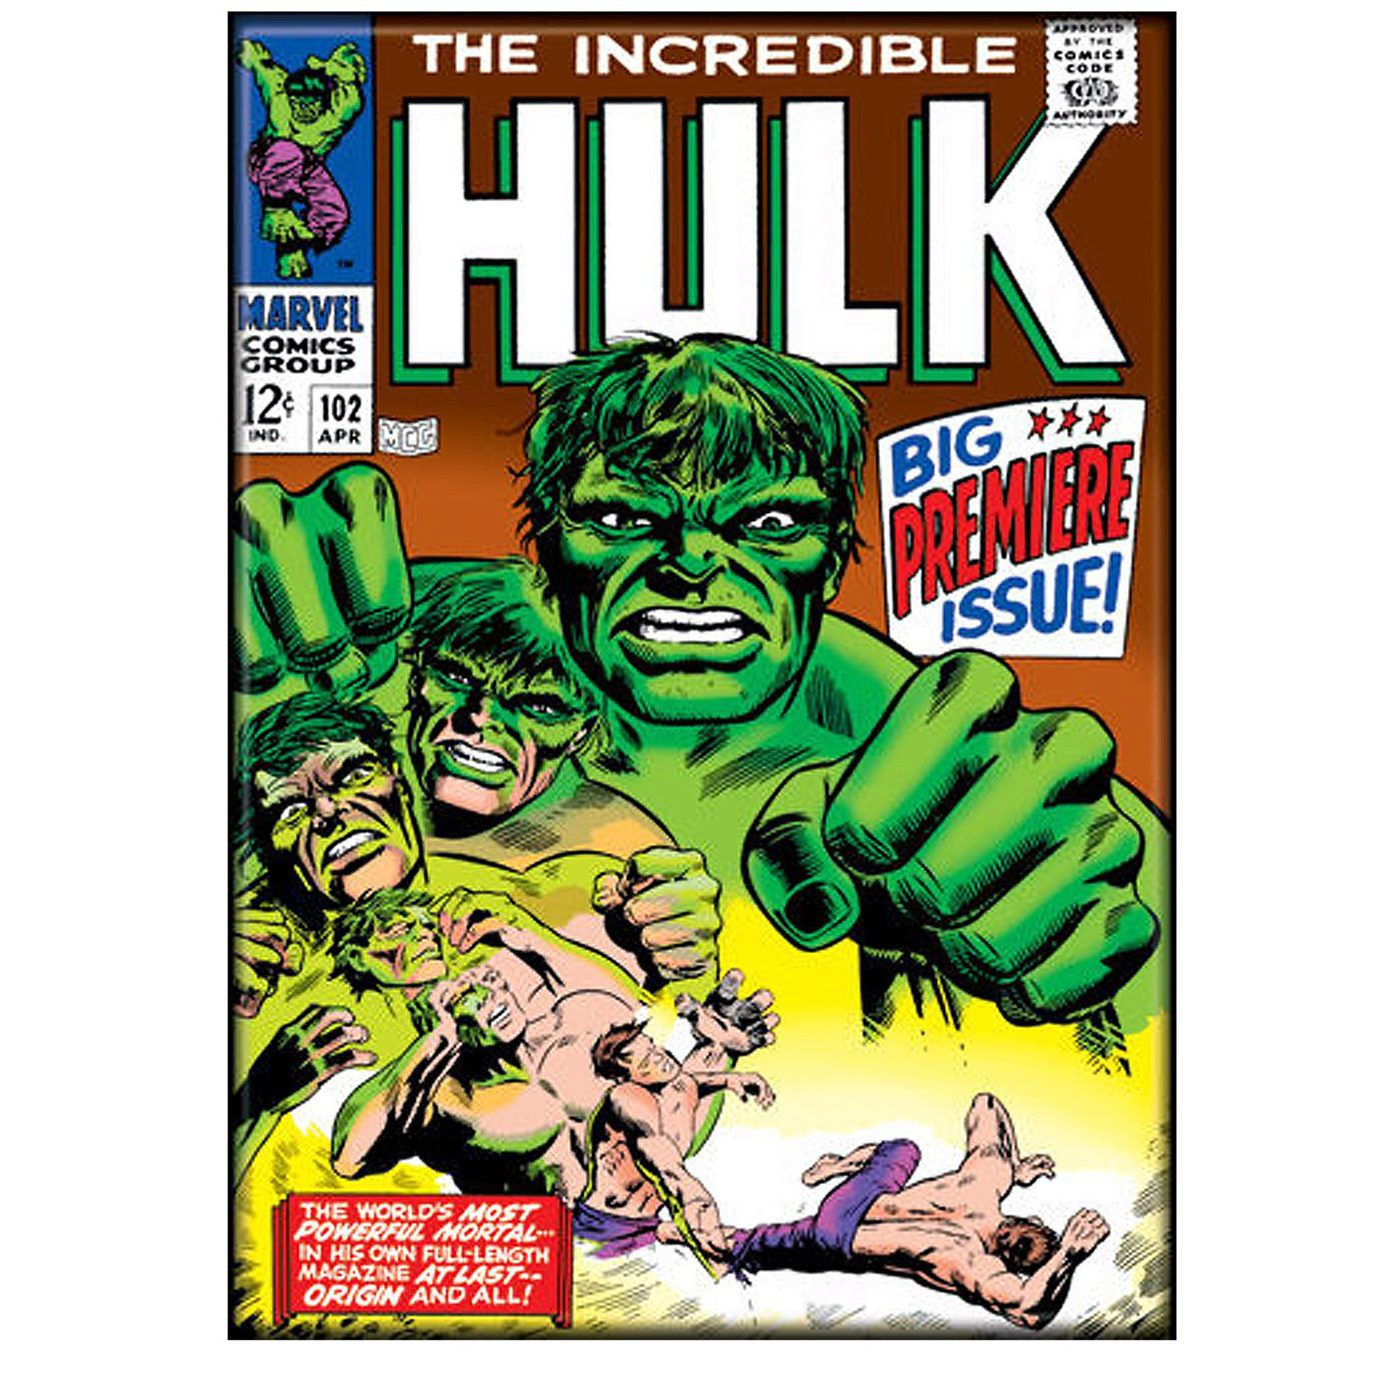 Incredible Hulk #102 Cover Magnet